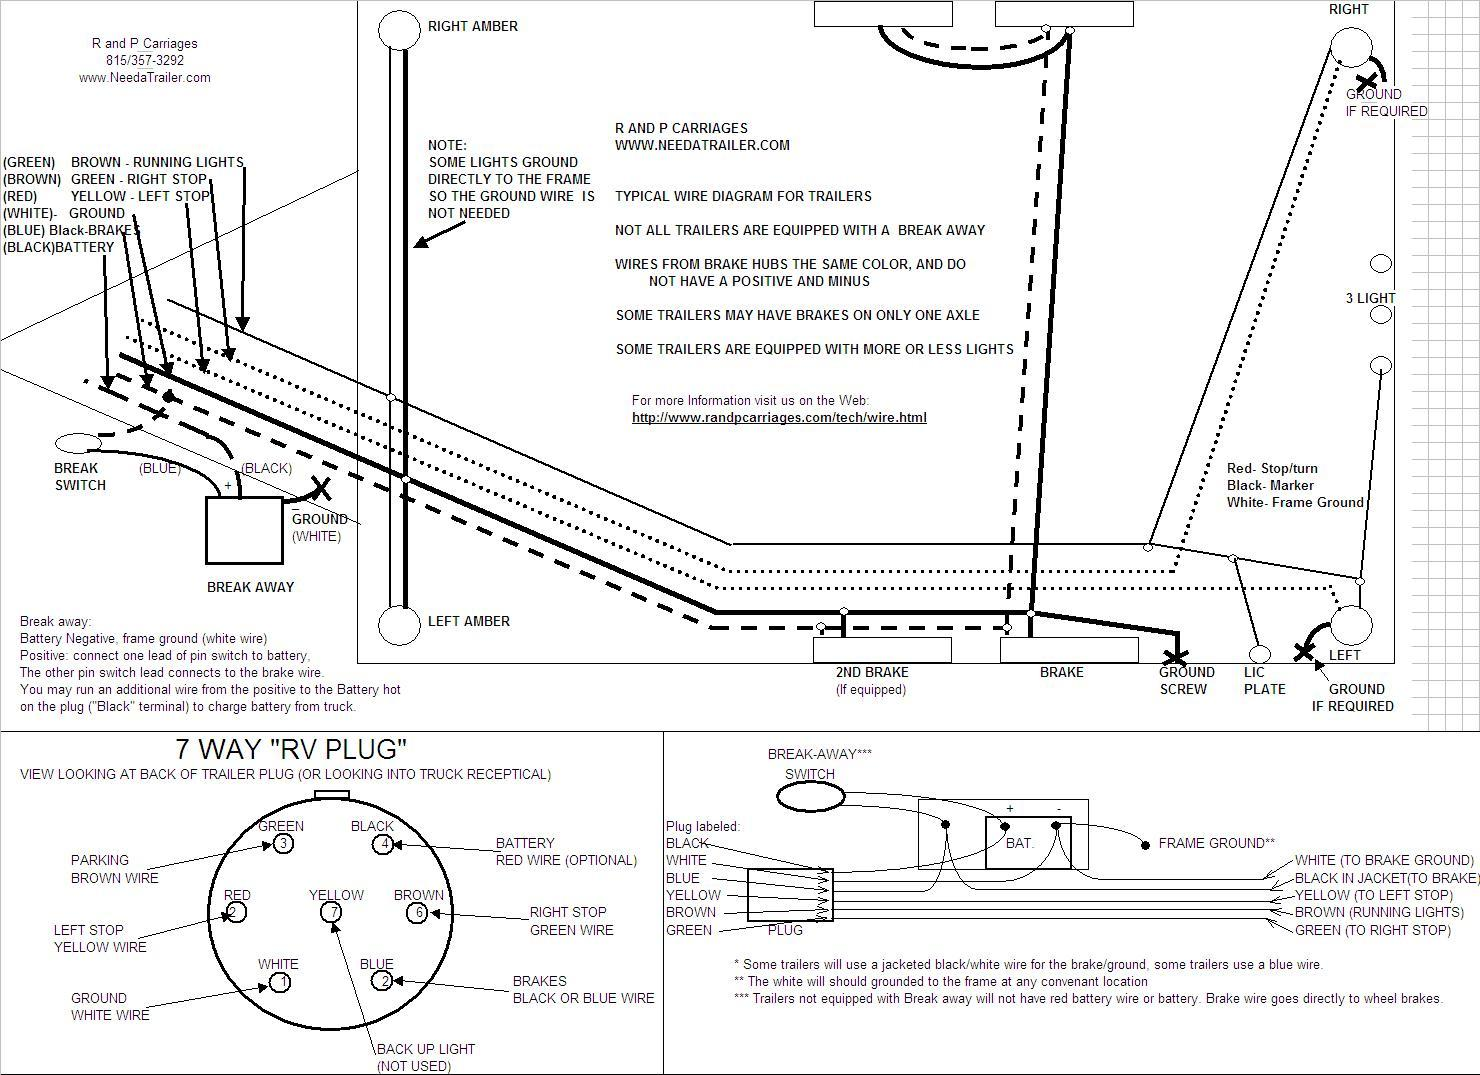 7 way wiring diagram brake controller installation instructions 3 Prong Plug Wiring Diagram at gsmx.co